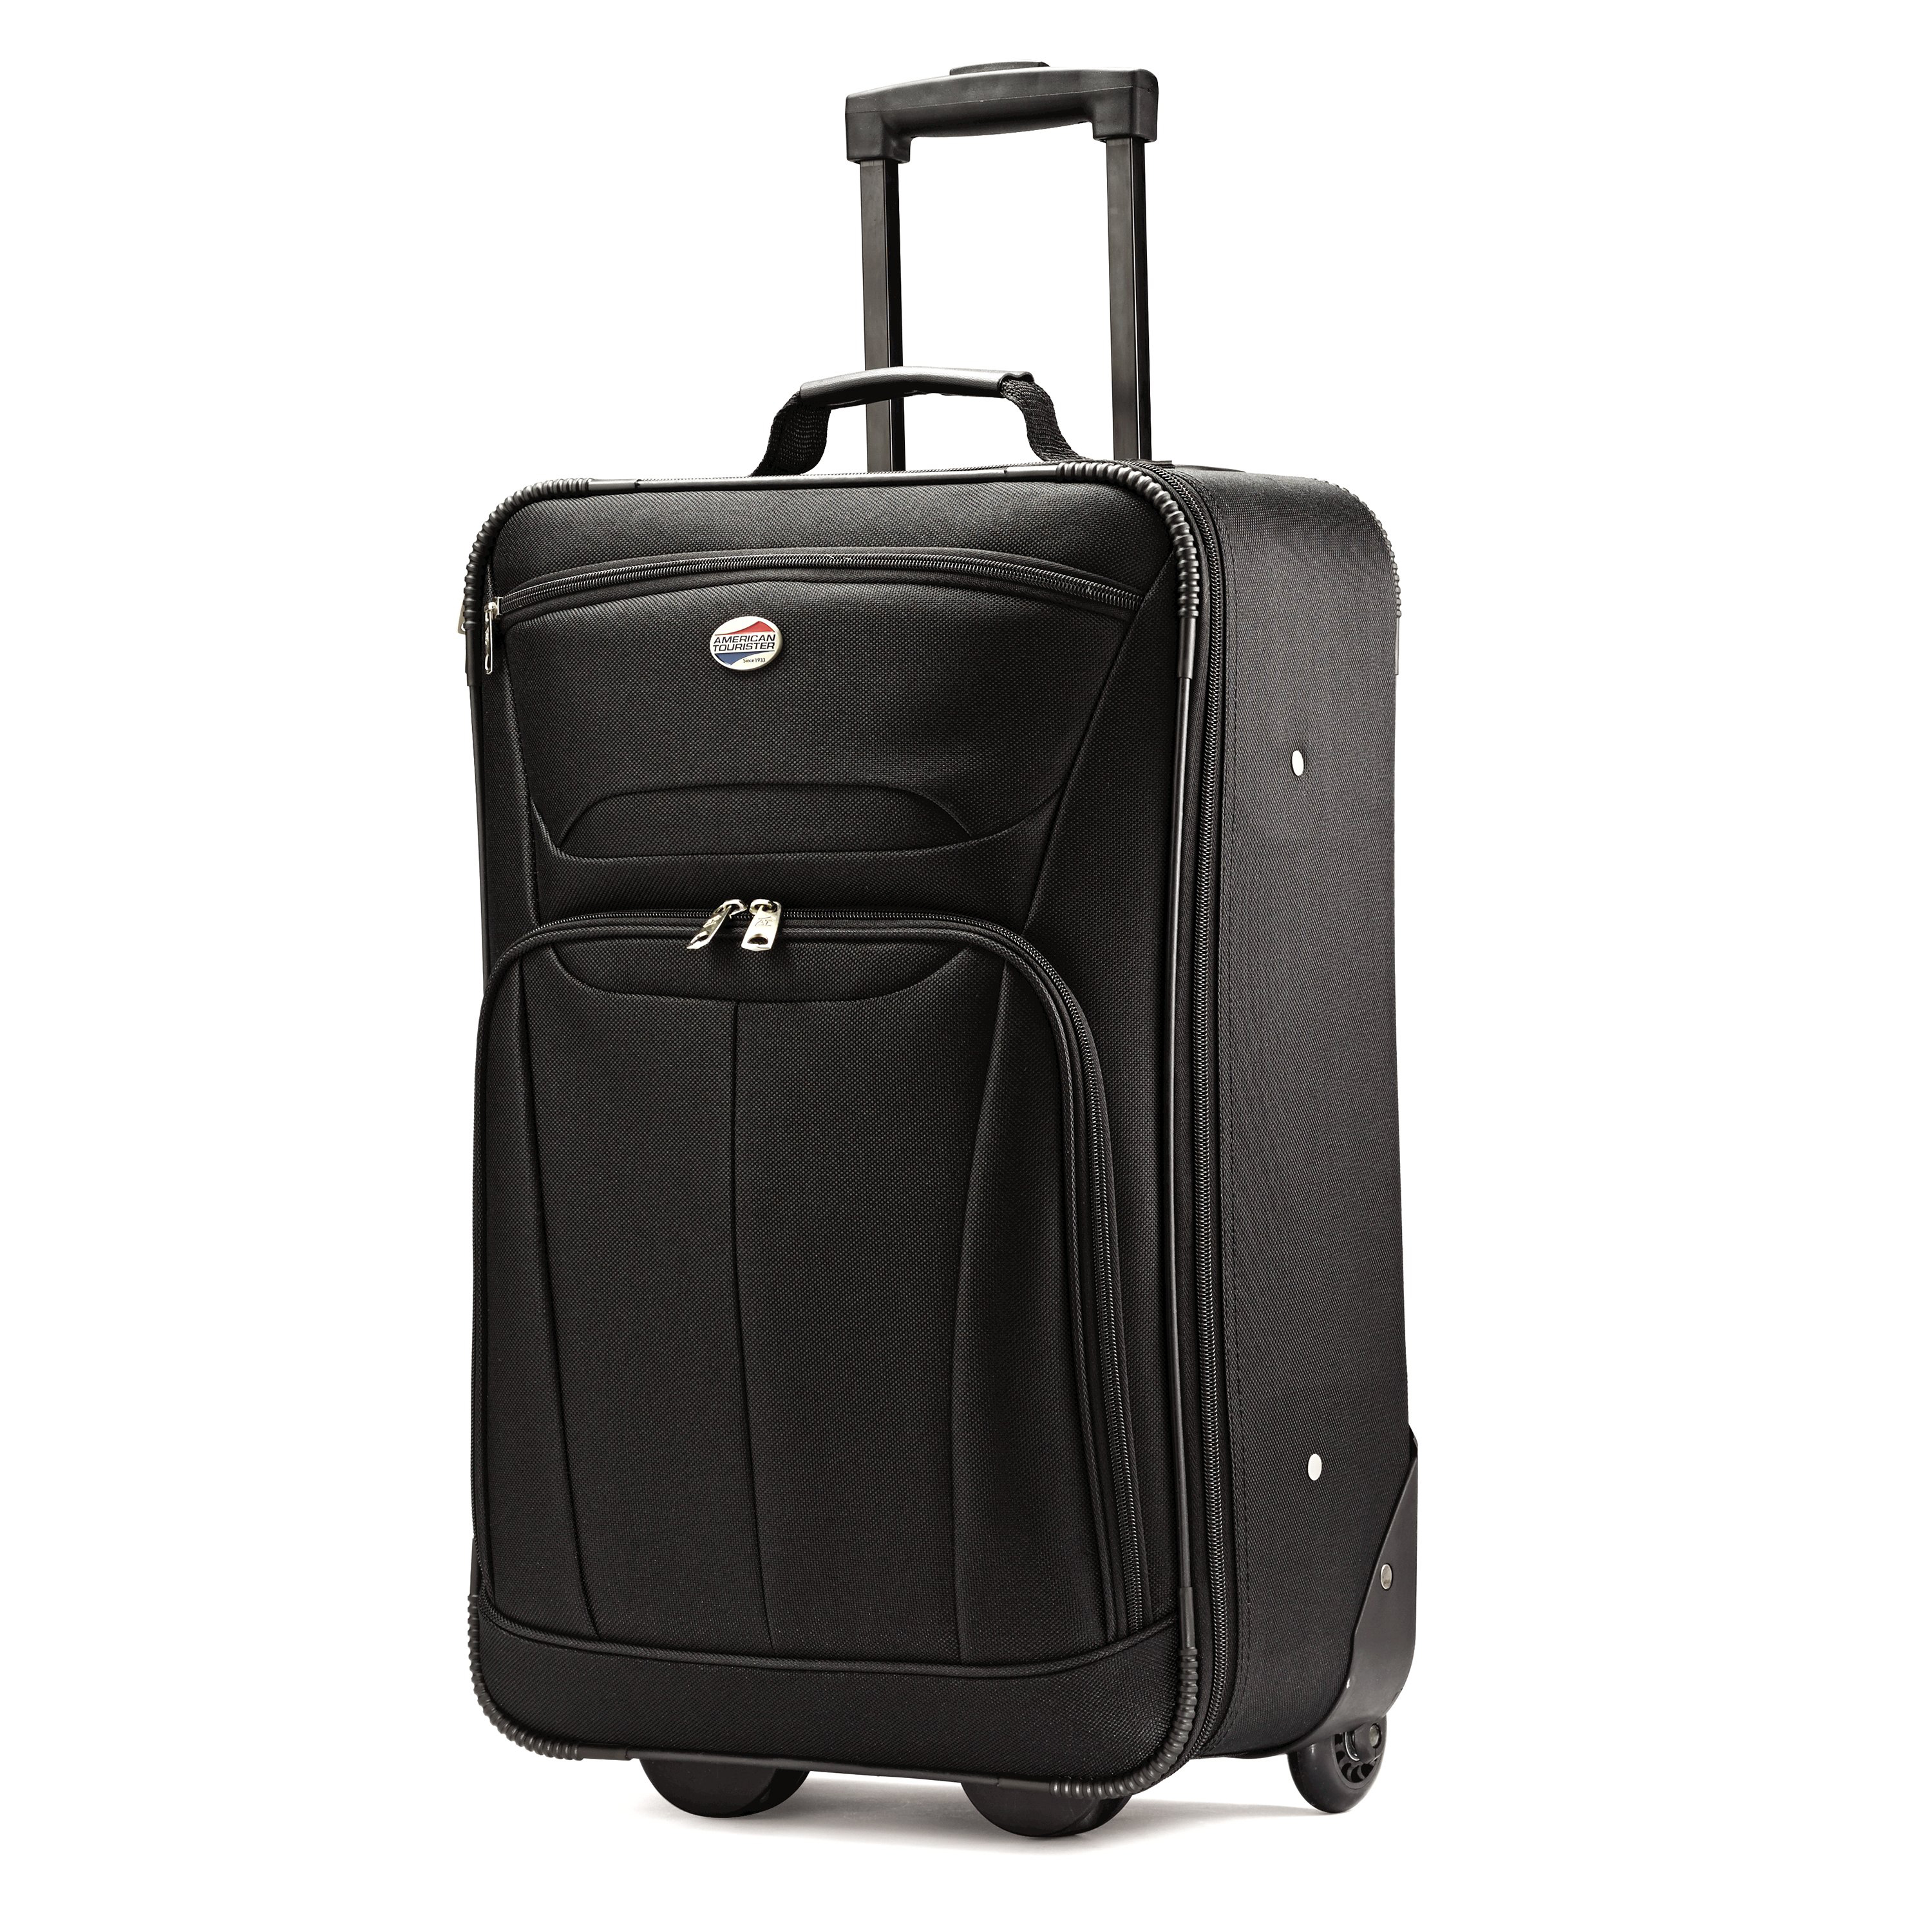 american tourister fieldbrook ii 2 piece set luggage ebay. Black Bedroom Furniture Sets. Home Design Ideas